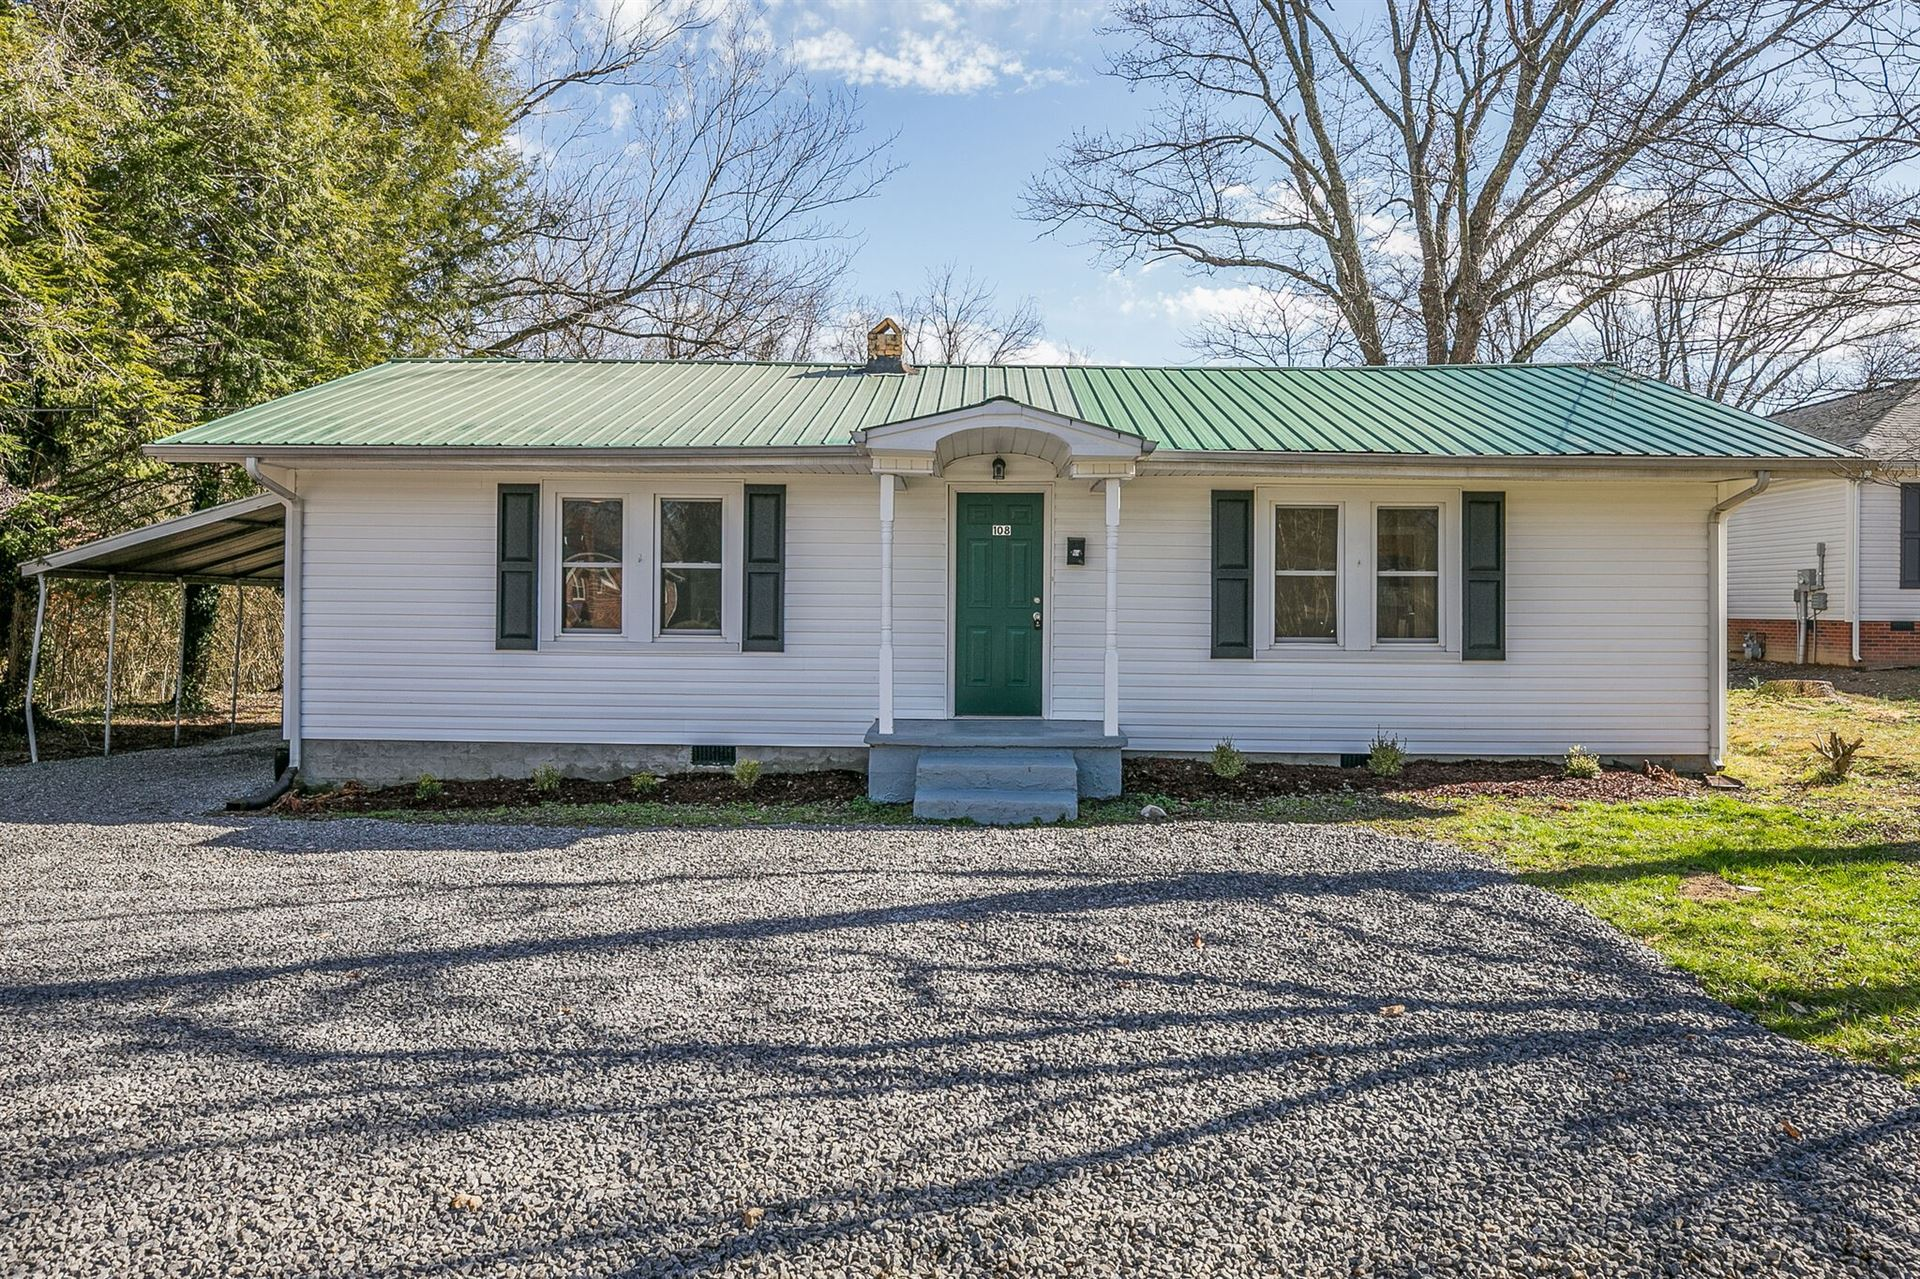 108 Juniper Ln, Smithville, TN 37166 - MLS#: 2224707